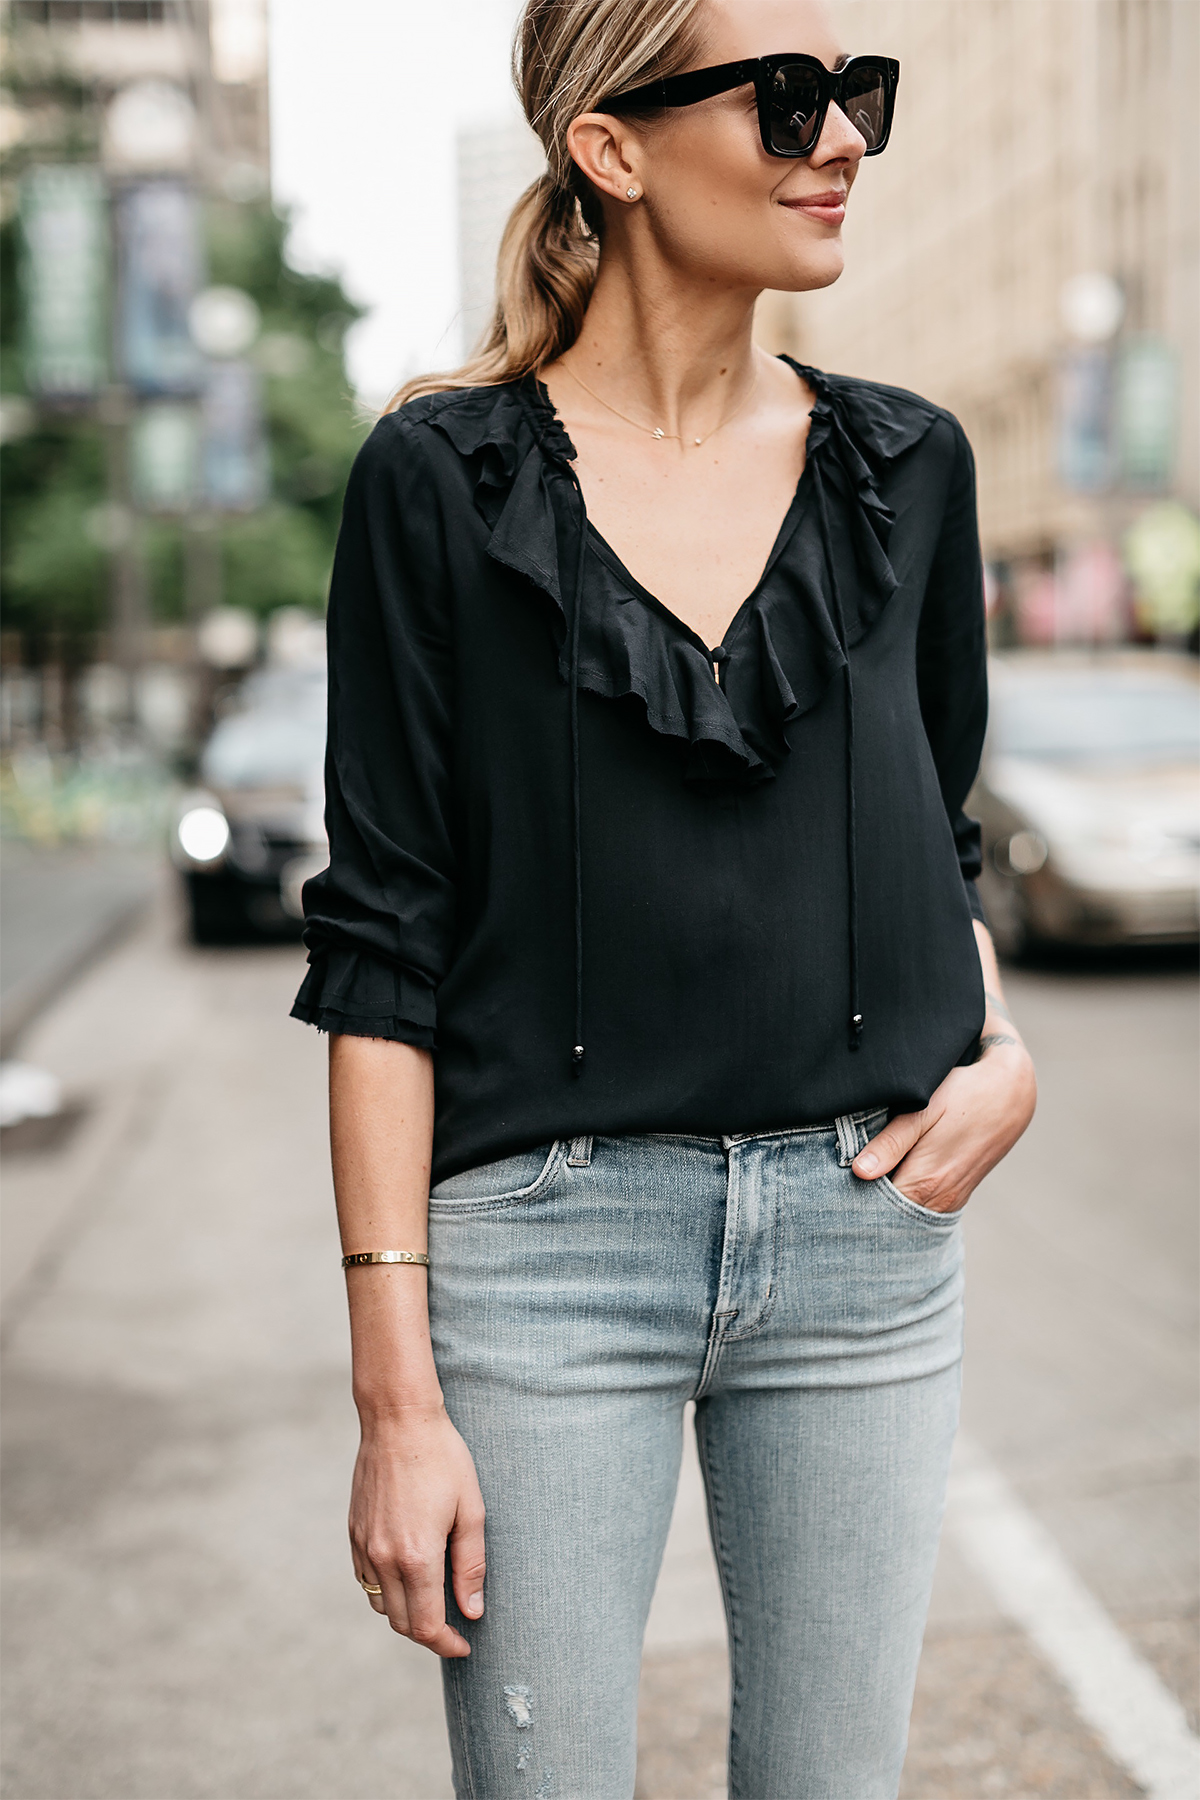 Blonde Woman Wearing Black Ruffle Top Denim Ripped Skinny Jeans Fashion Jackson Dallas Blogger Fashion Blogger Street Style